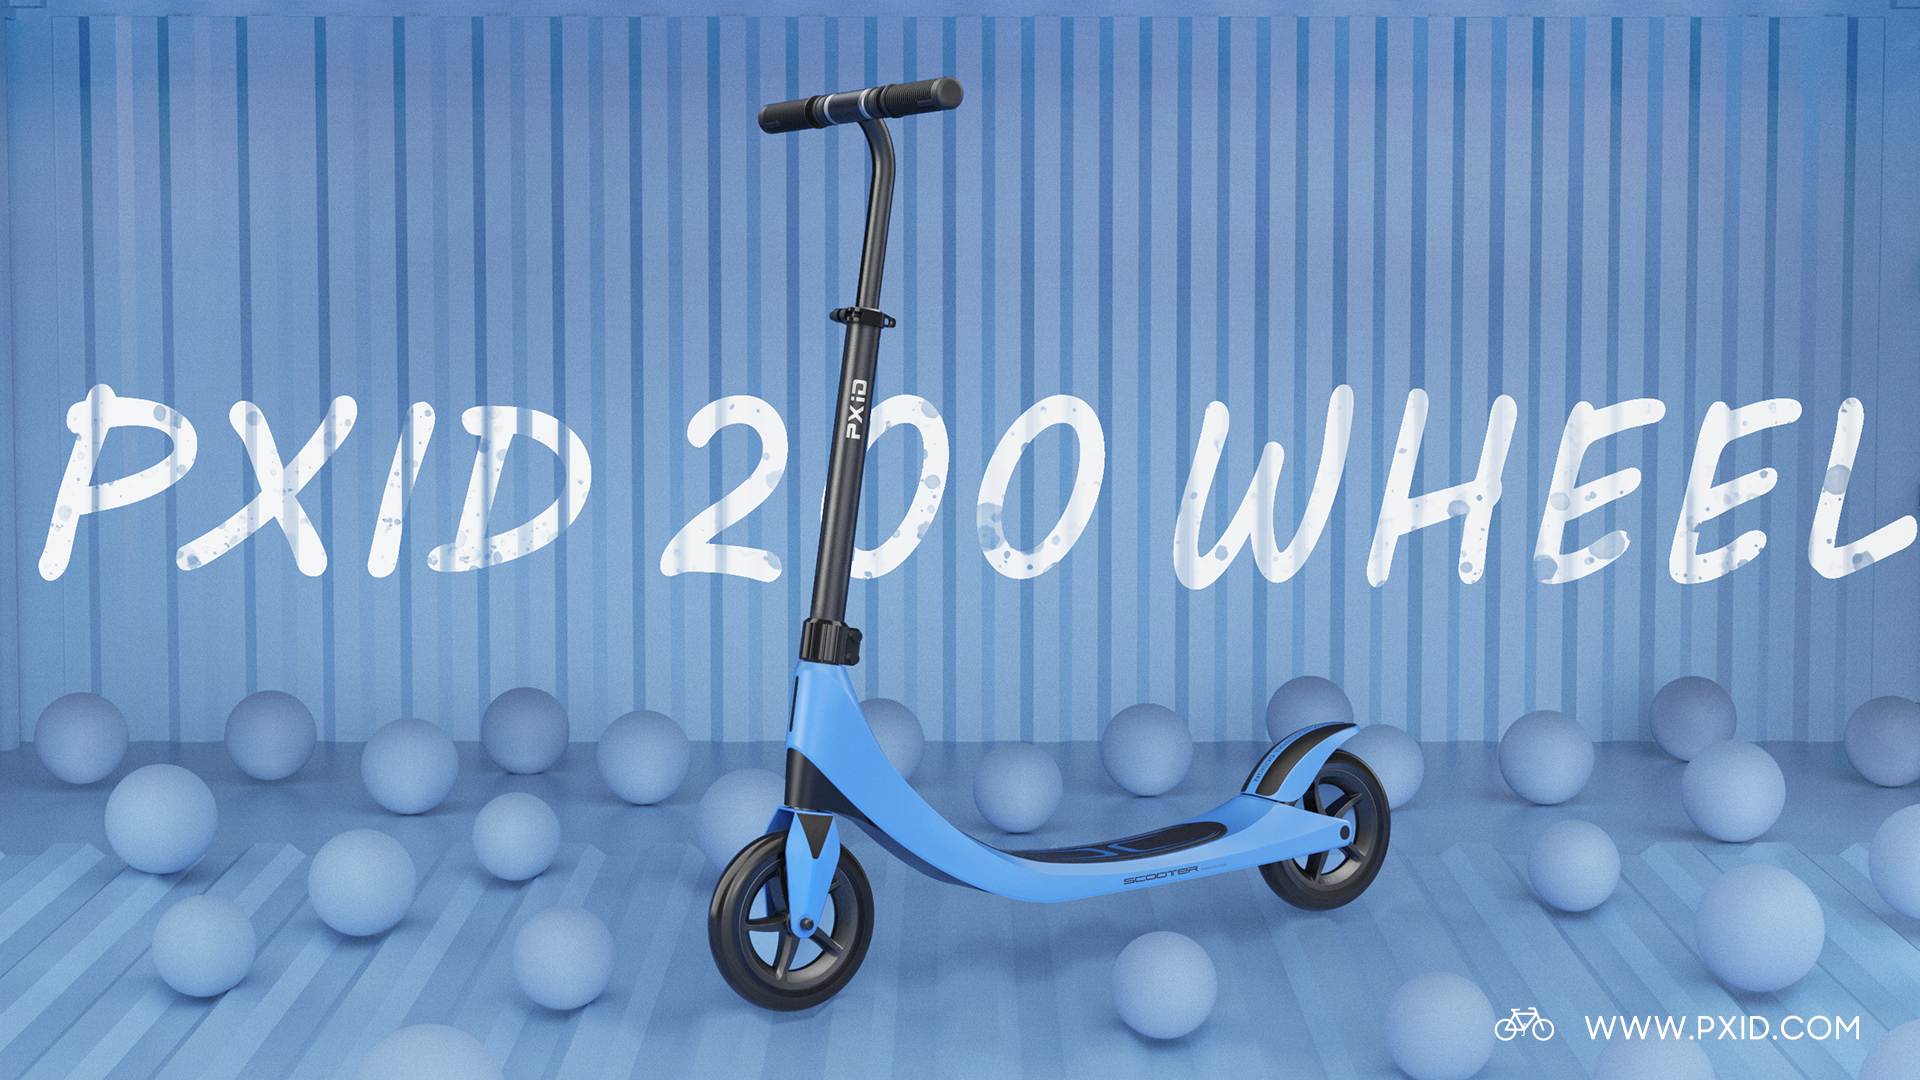 200 wheel non-drive scooter